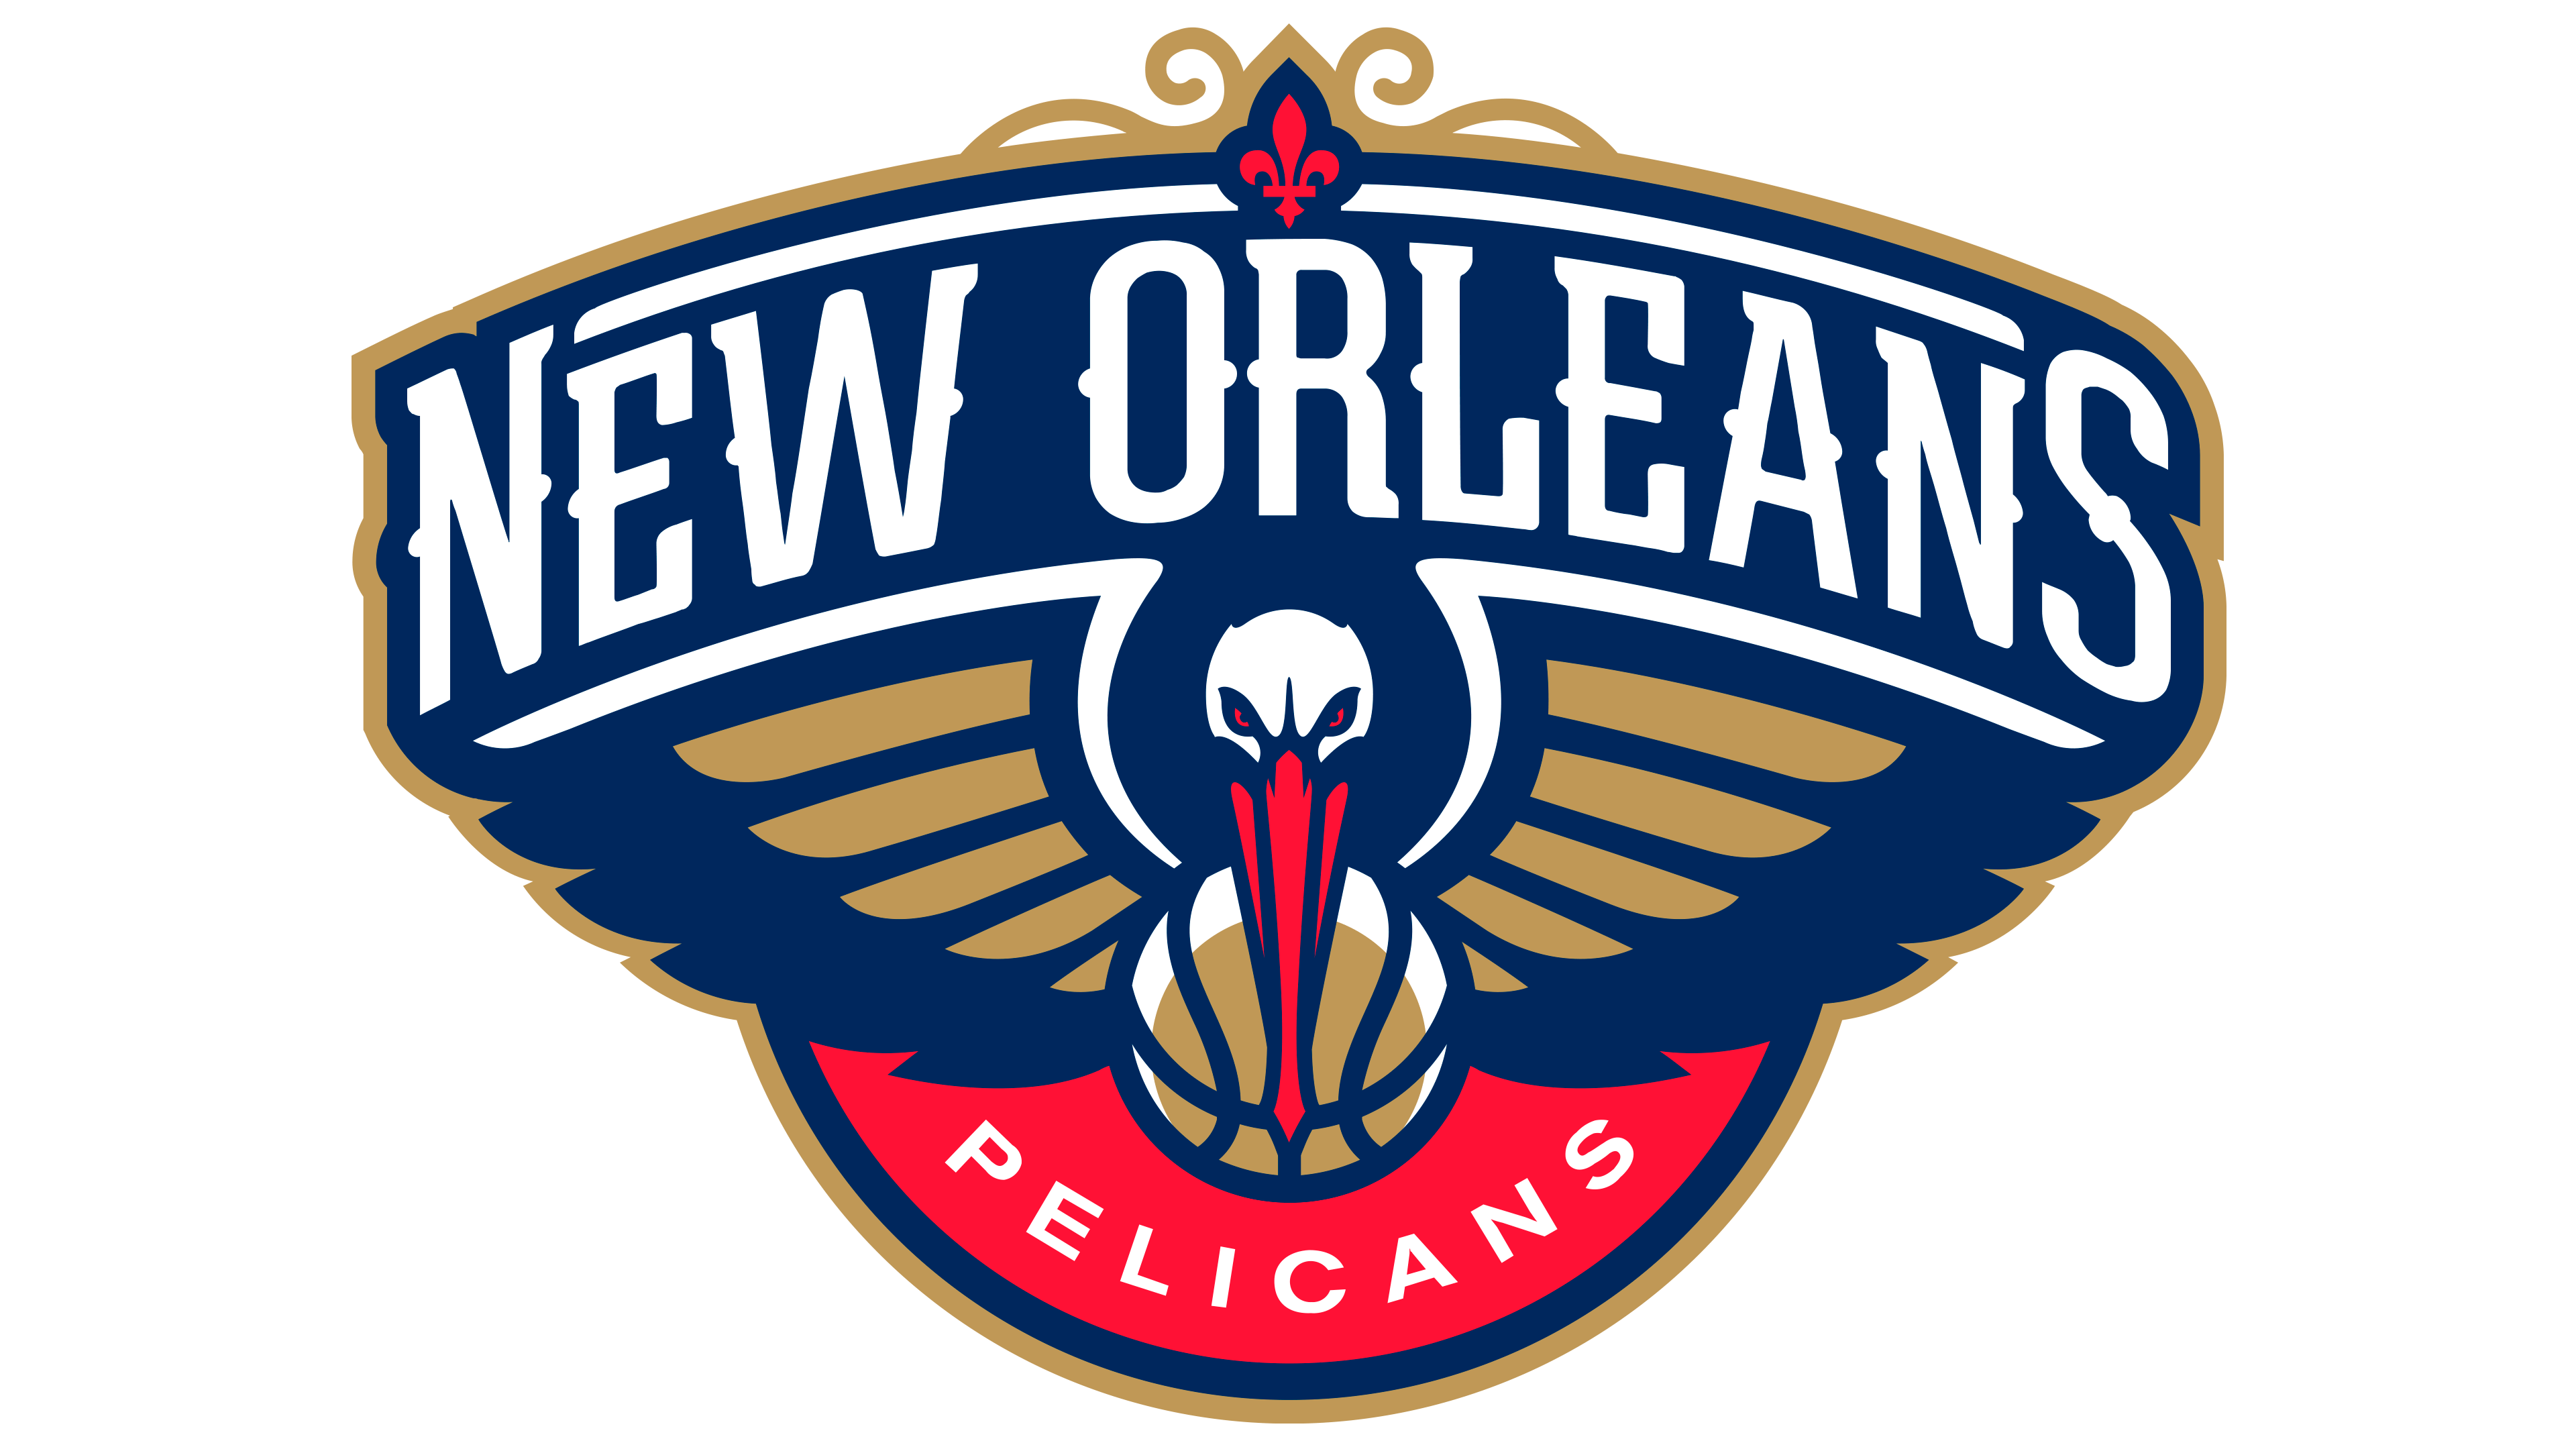 Pelicans Png - New Orleans Pelicans Logo | HISTORY & MEANING & PNG